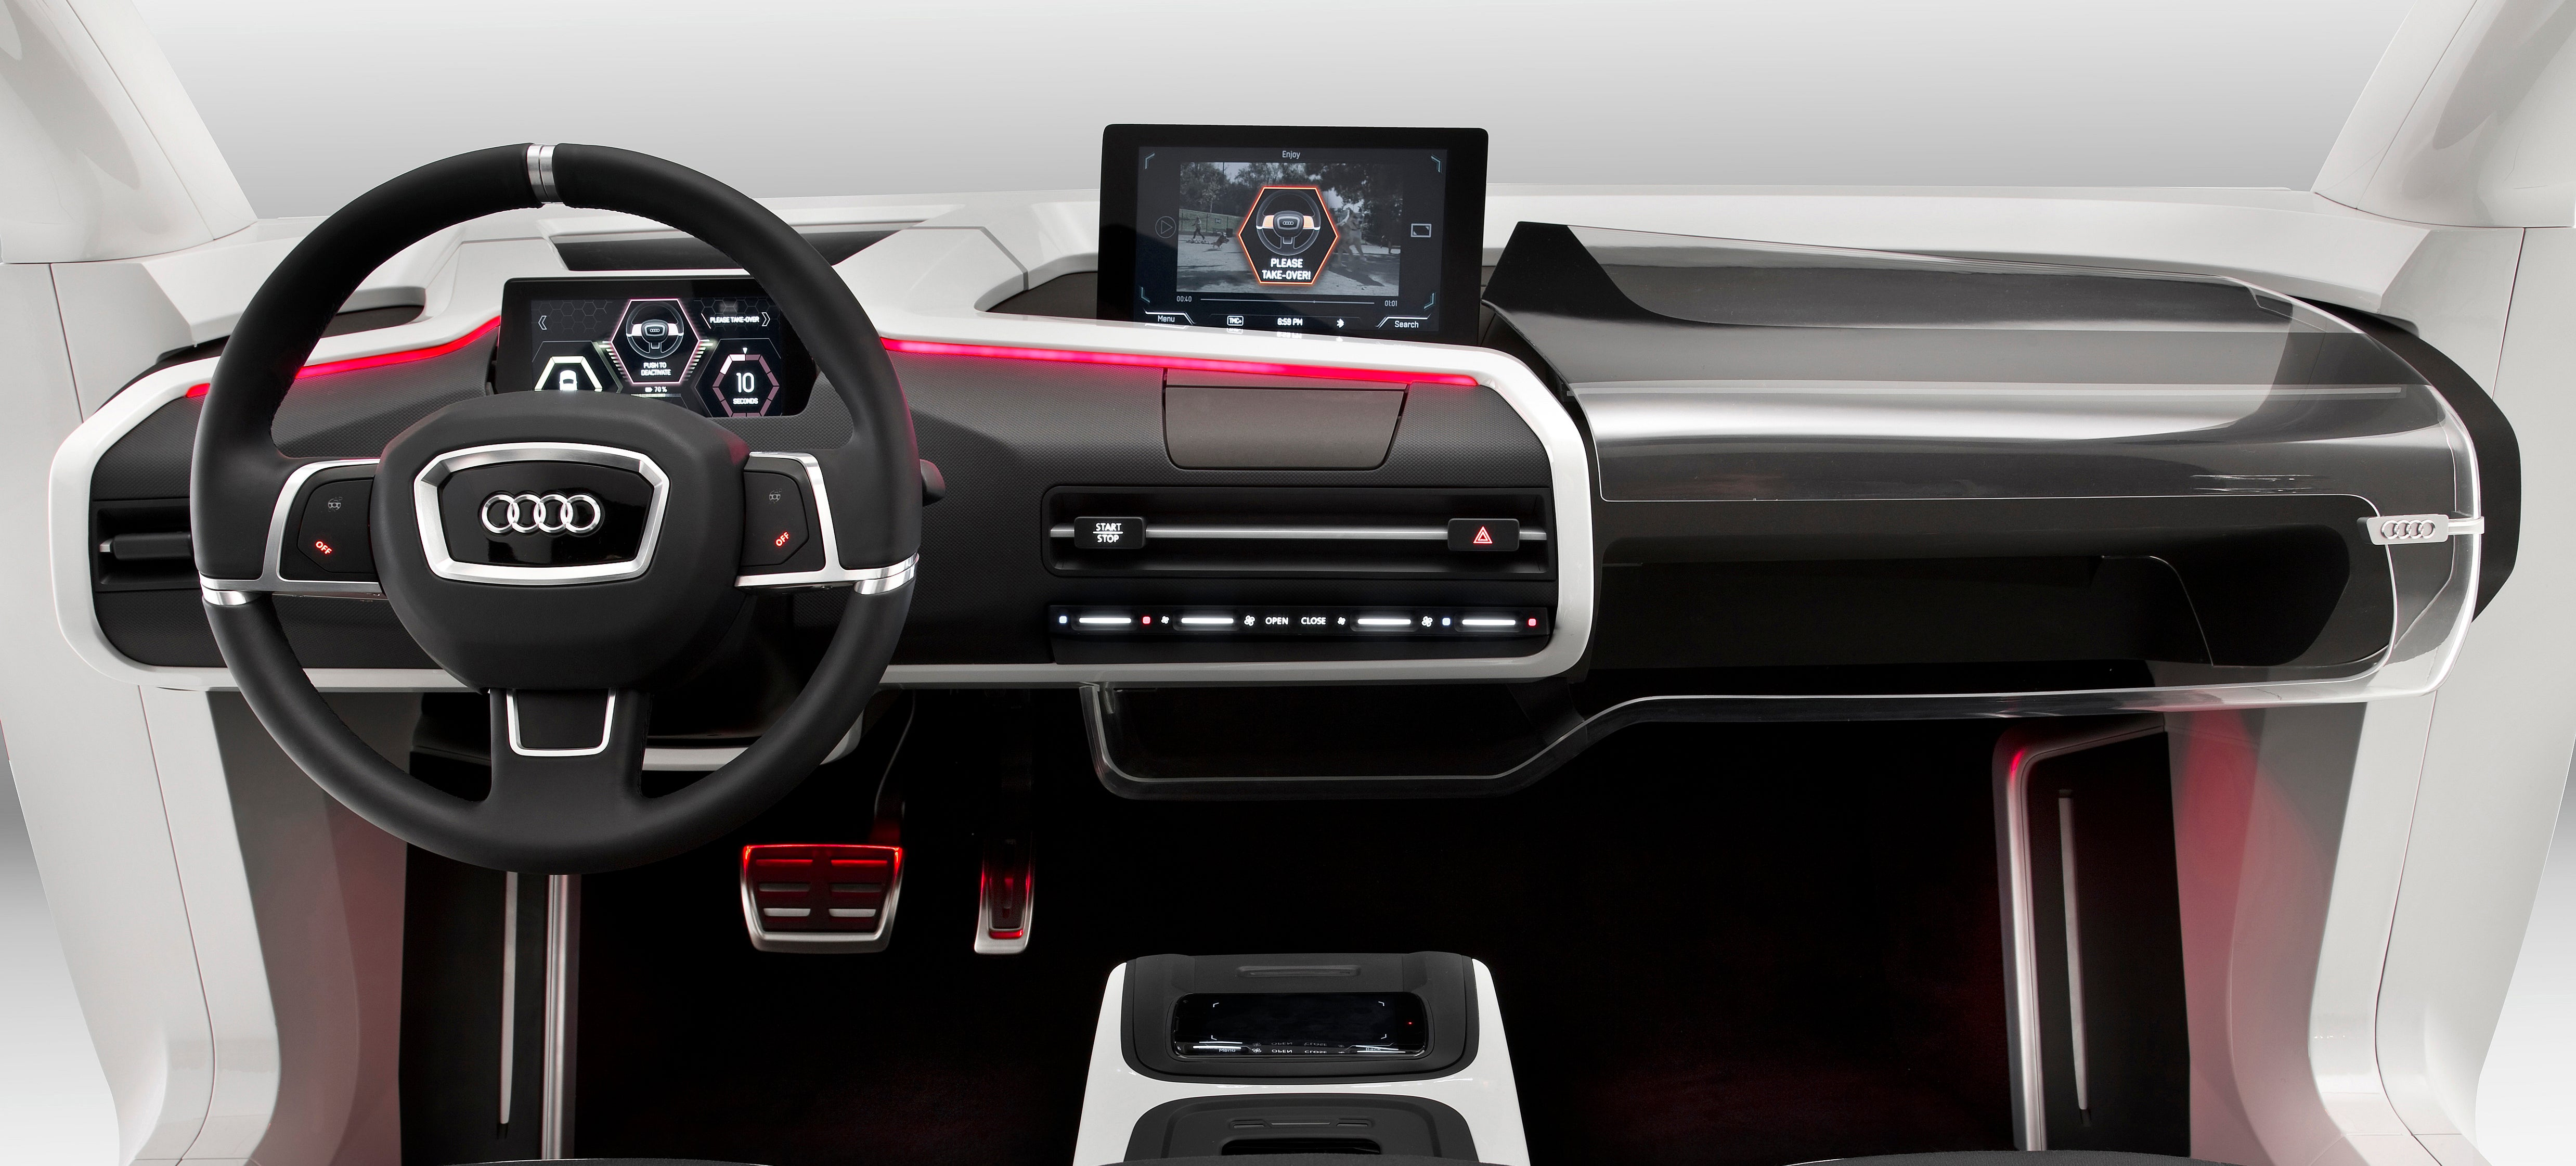 Is This What Your Car's Cockpit Will Look Like In 2025?